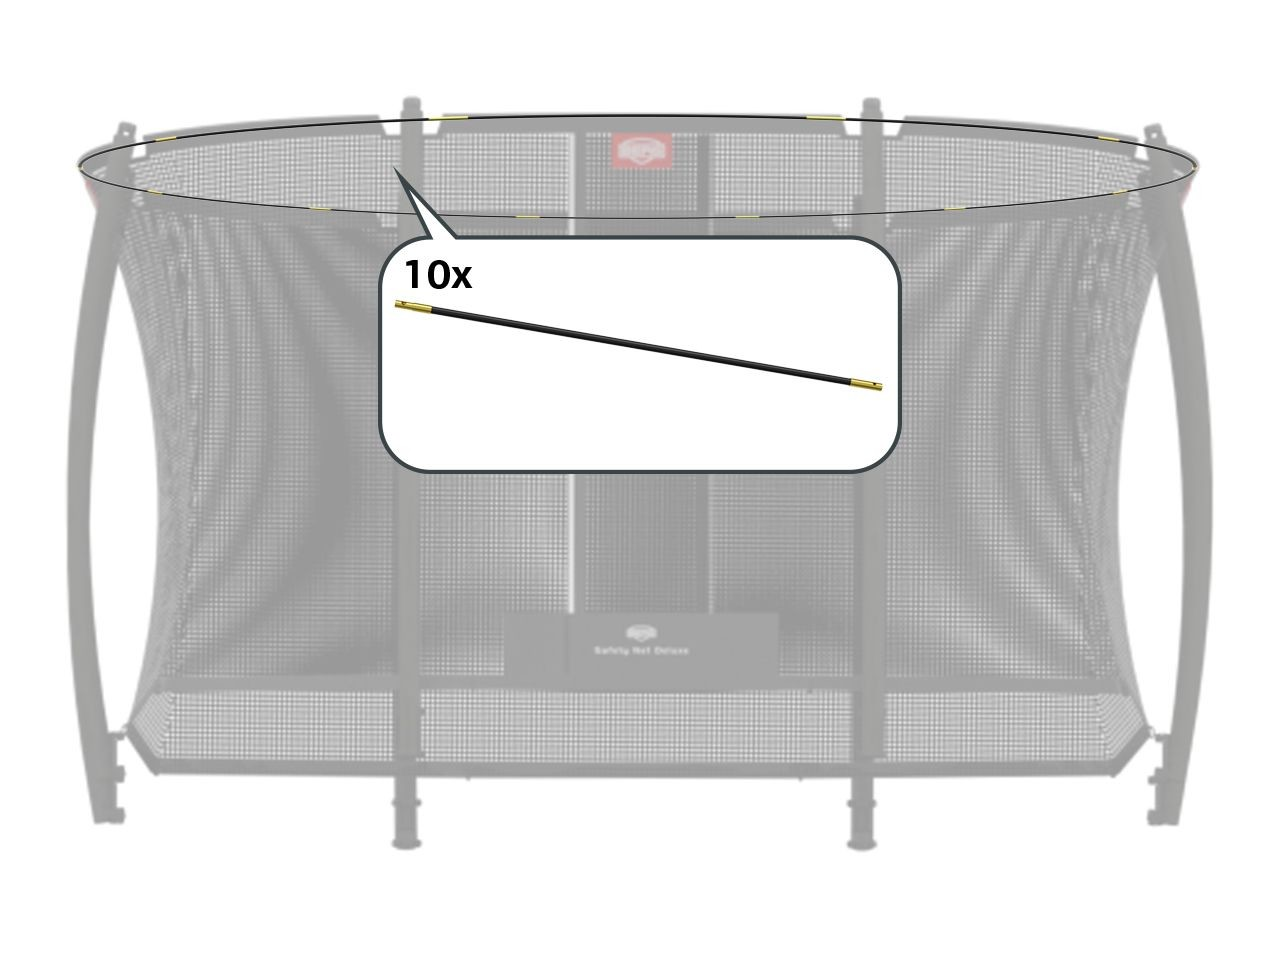 Safety Net Deluxe - Tent tubes EazyFit